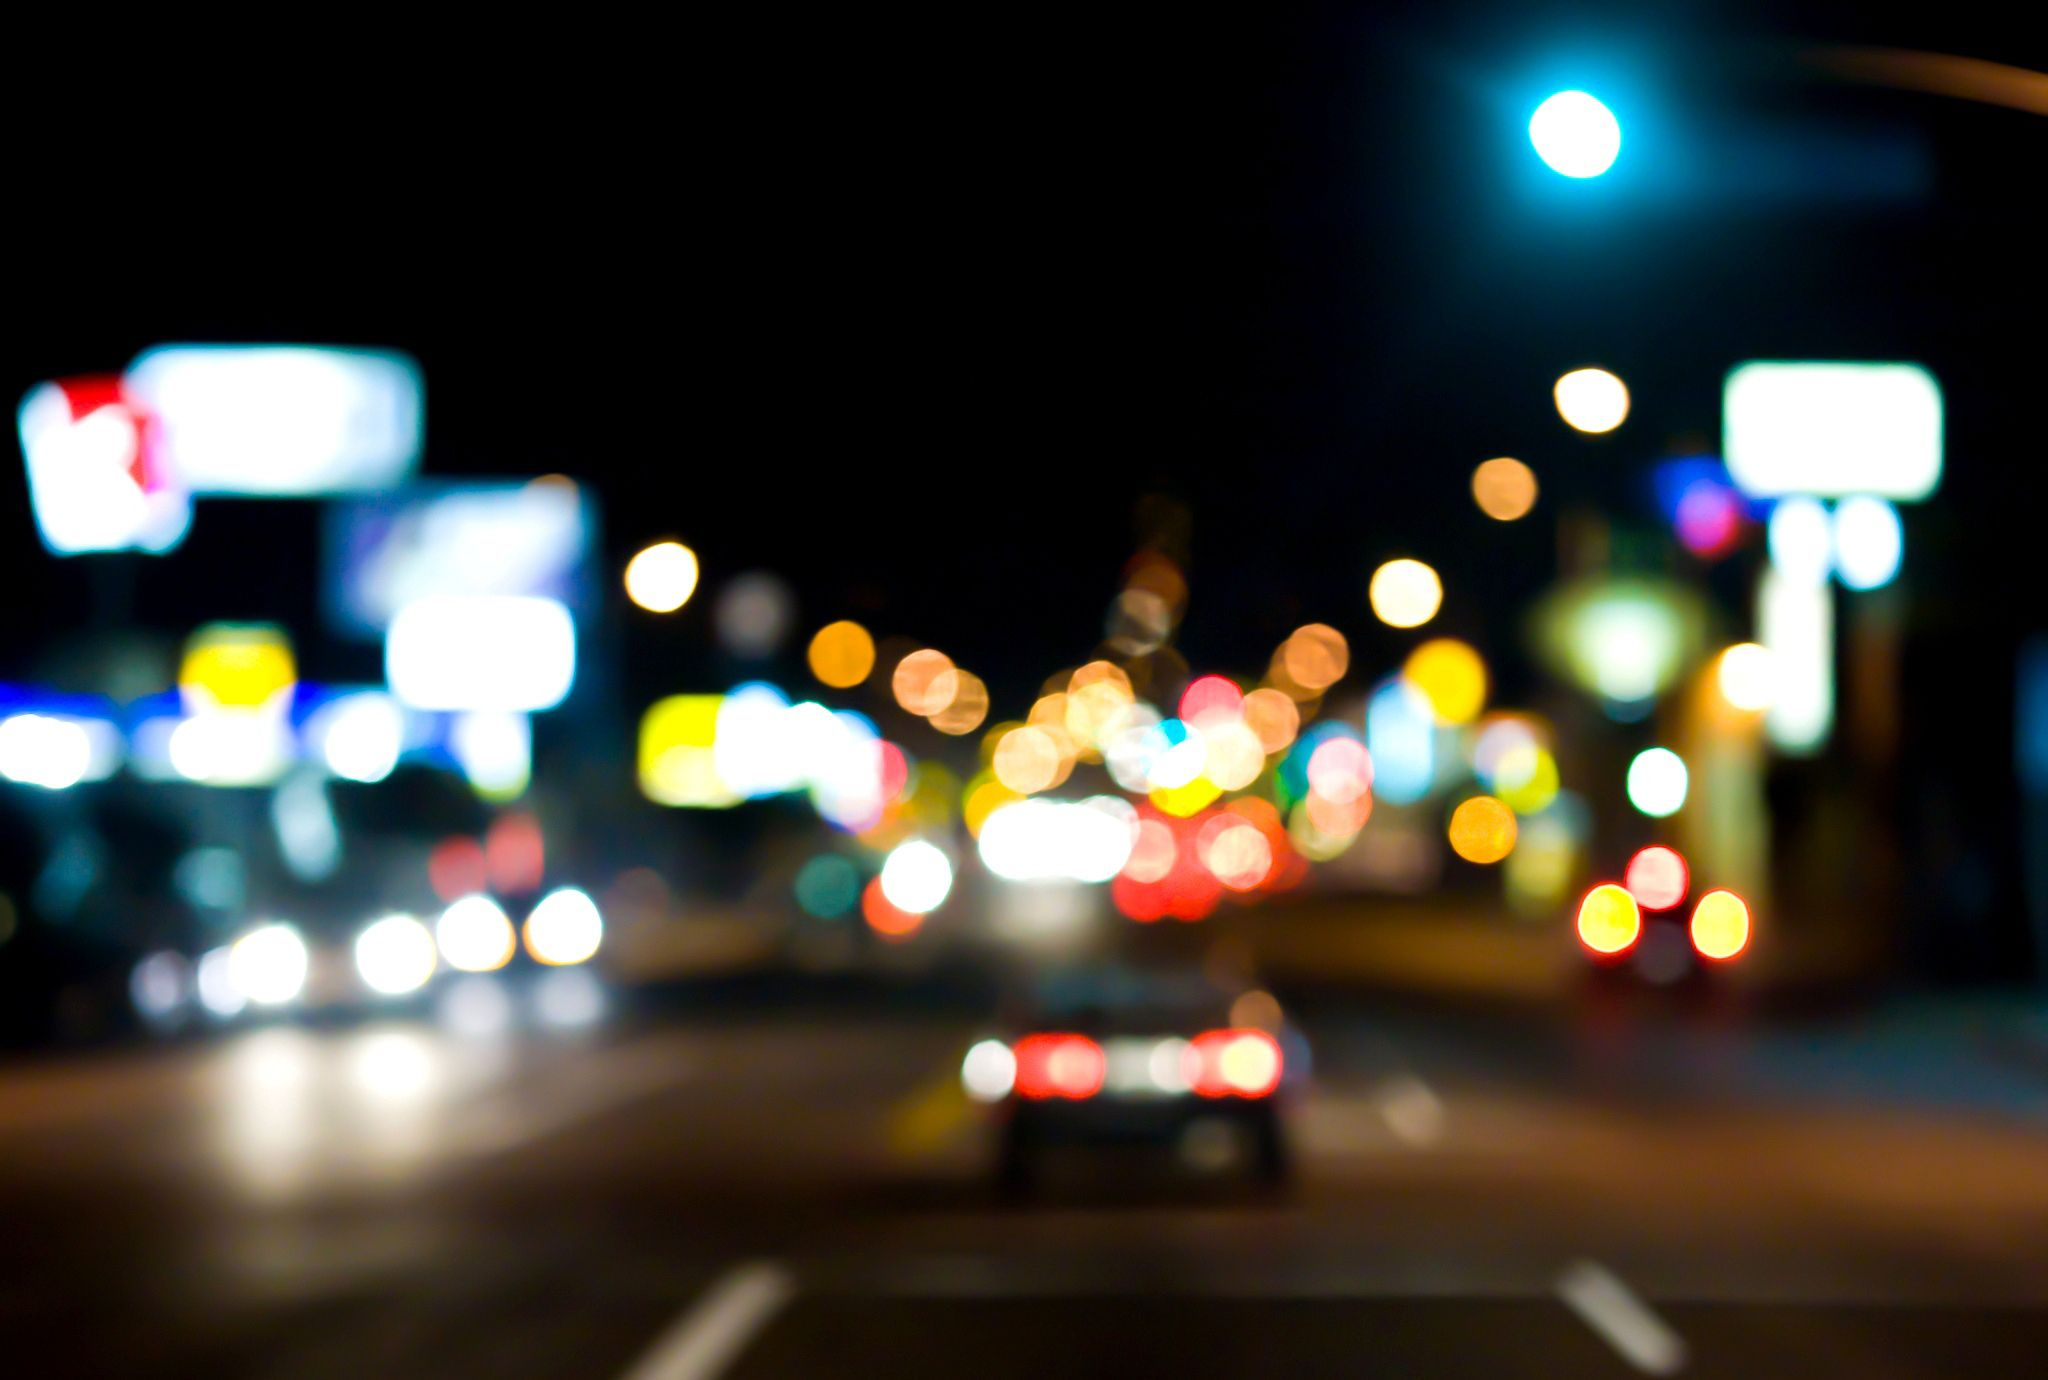 Wallpaper City, Street, Road, Night, Bokeh, Car Lights